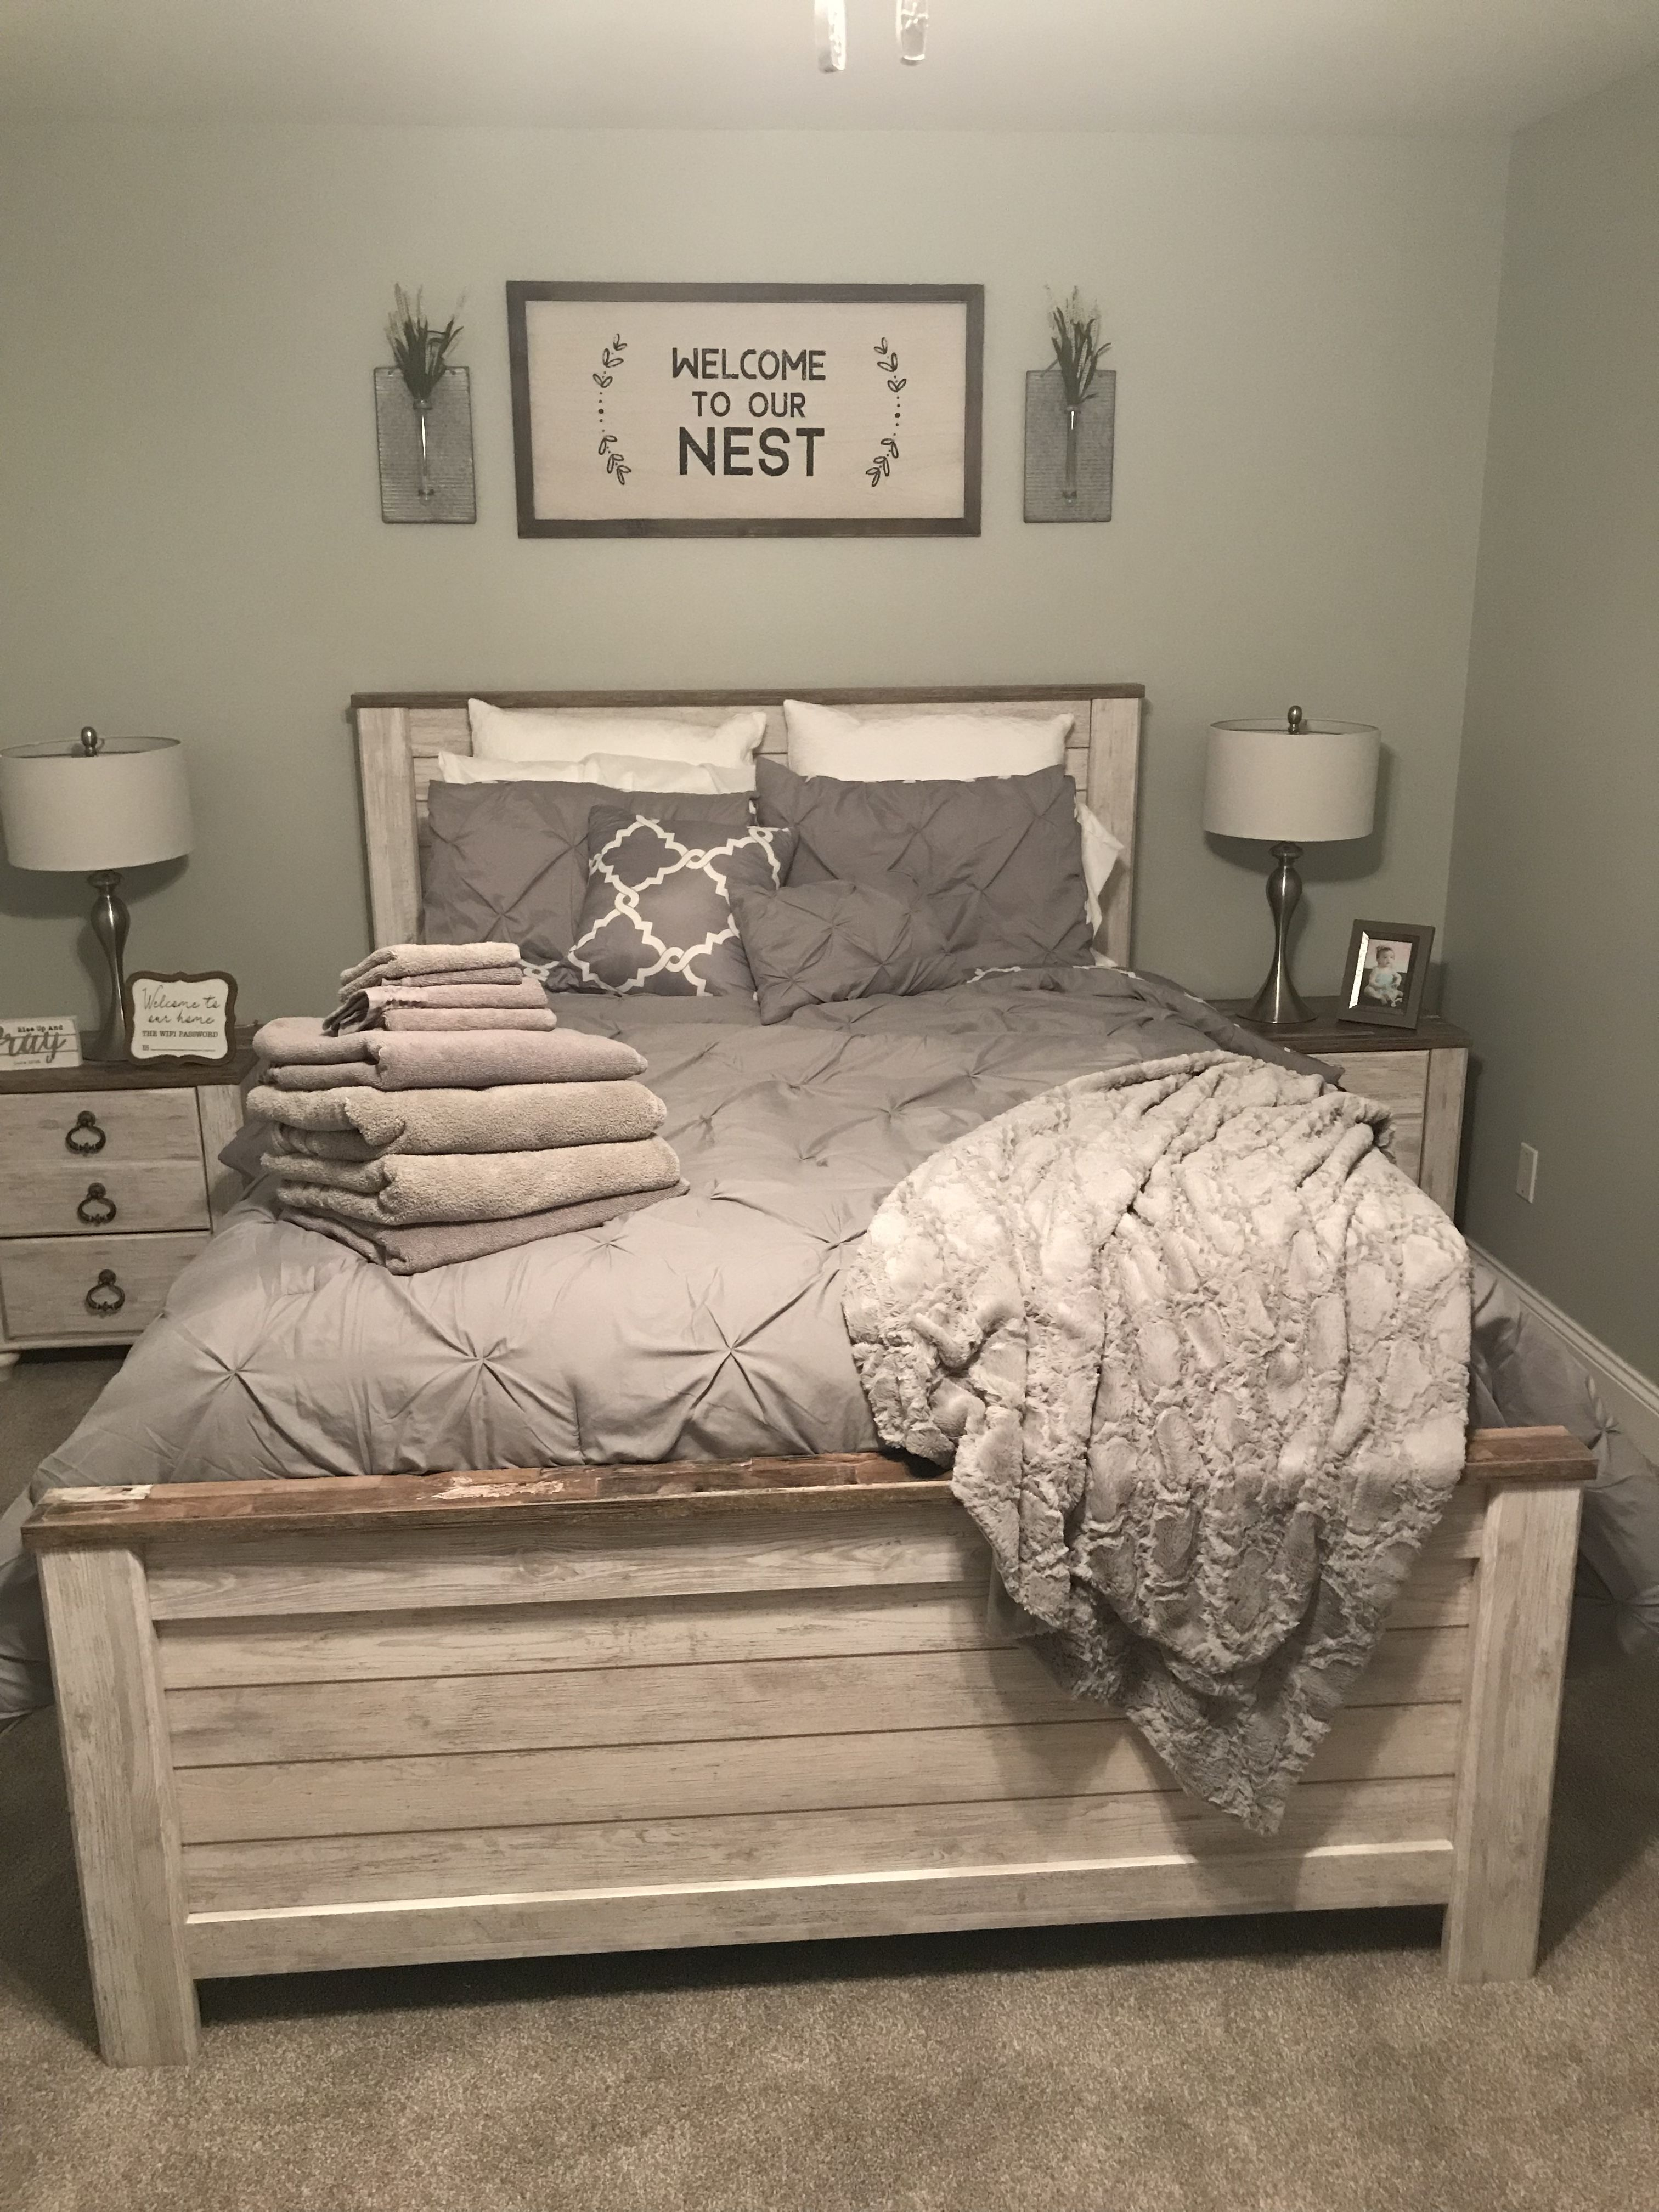 Guest Bedroom Ideas Sign From Hobby Lobby Bedding From Target